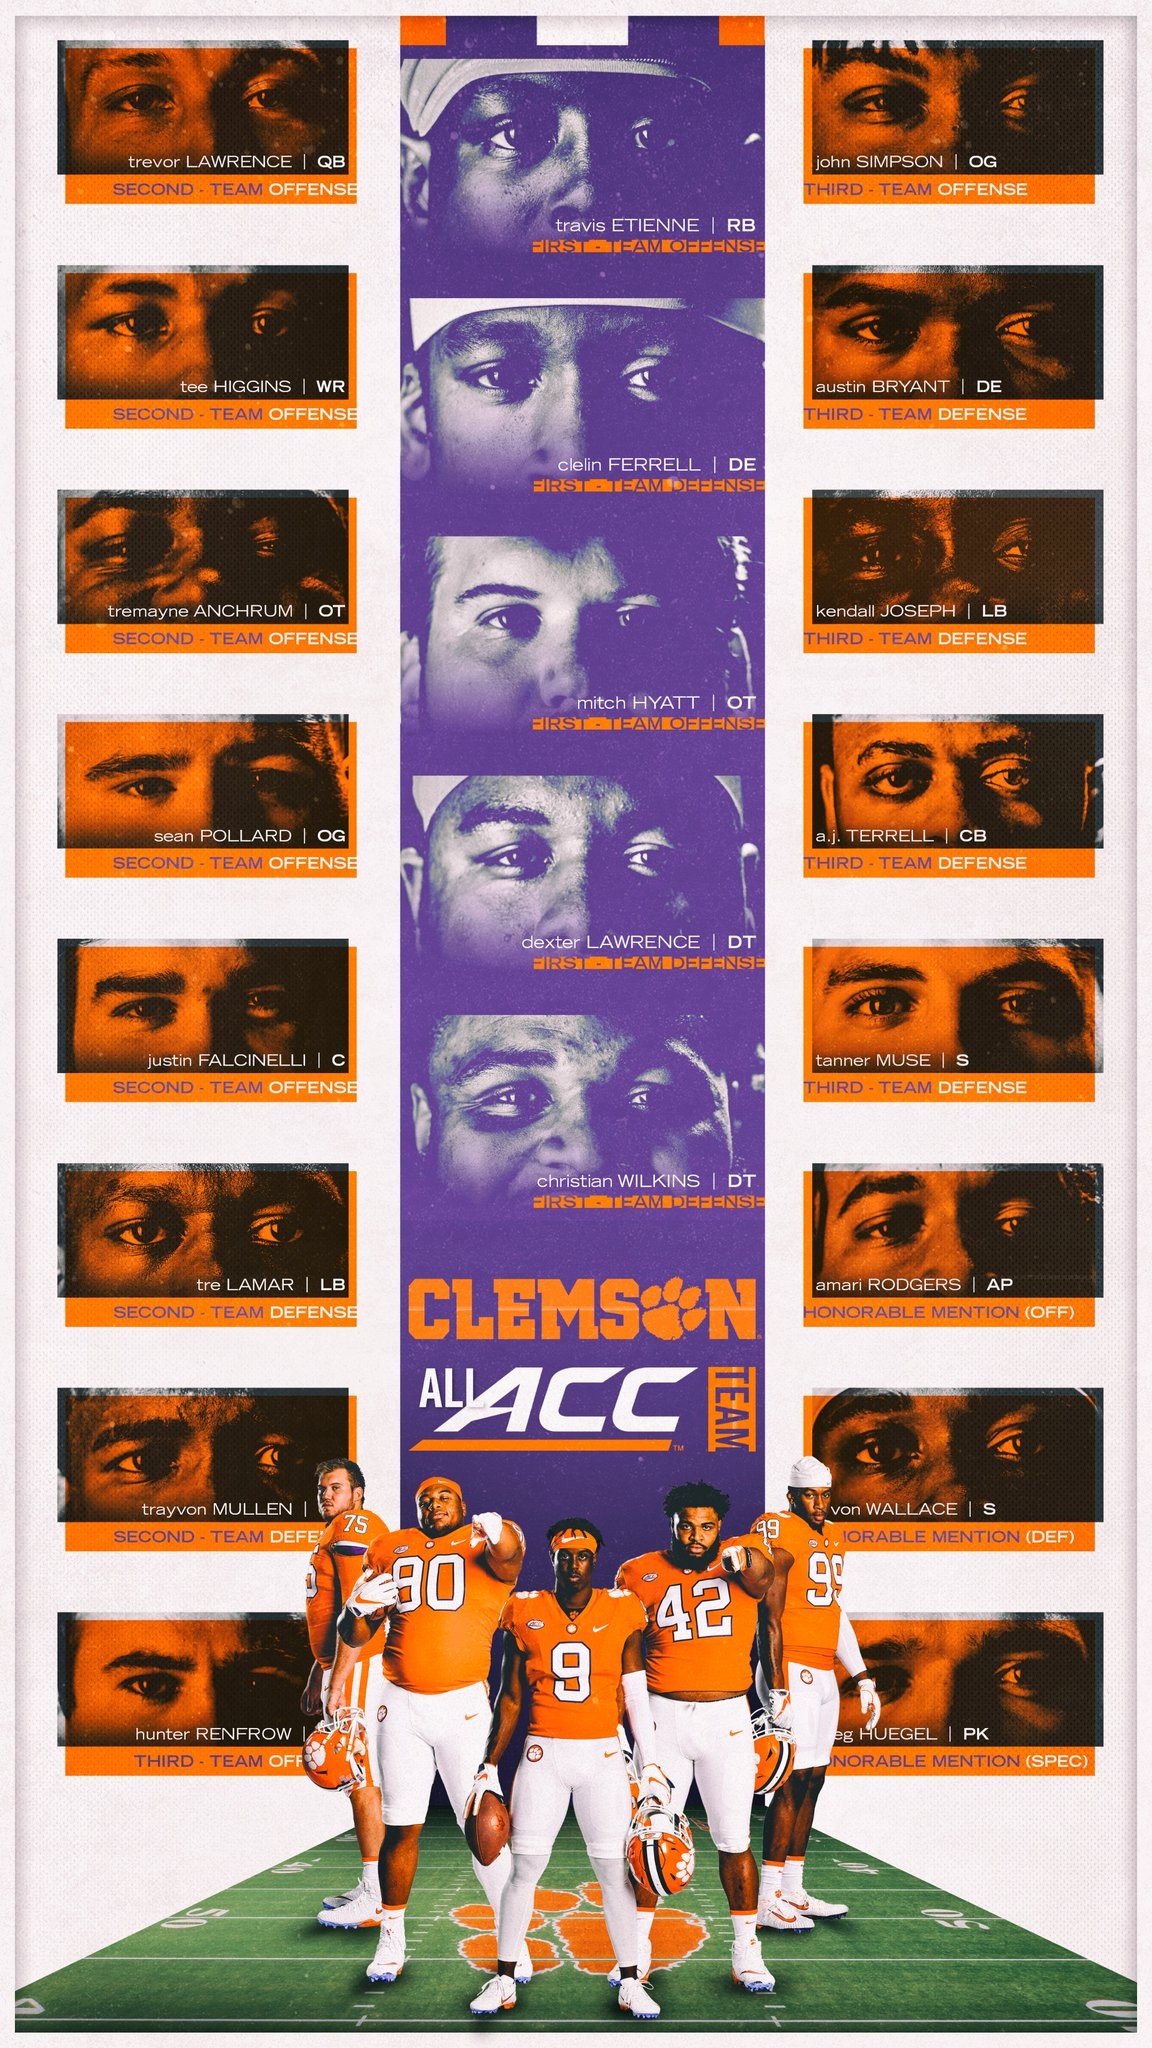 Clemson Leads ACC With 18 Players on 2018 All-ACC Football Team